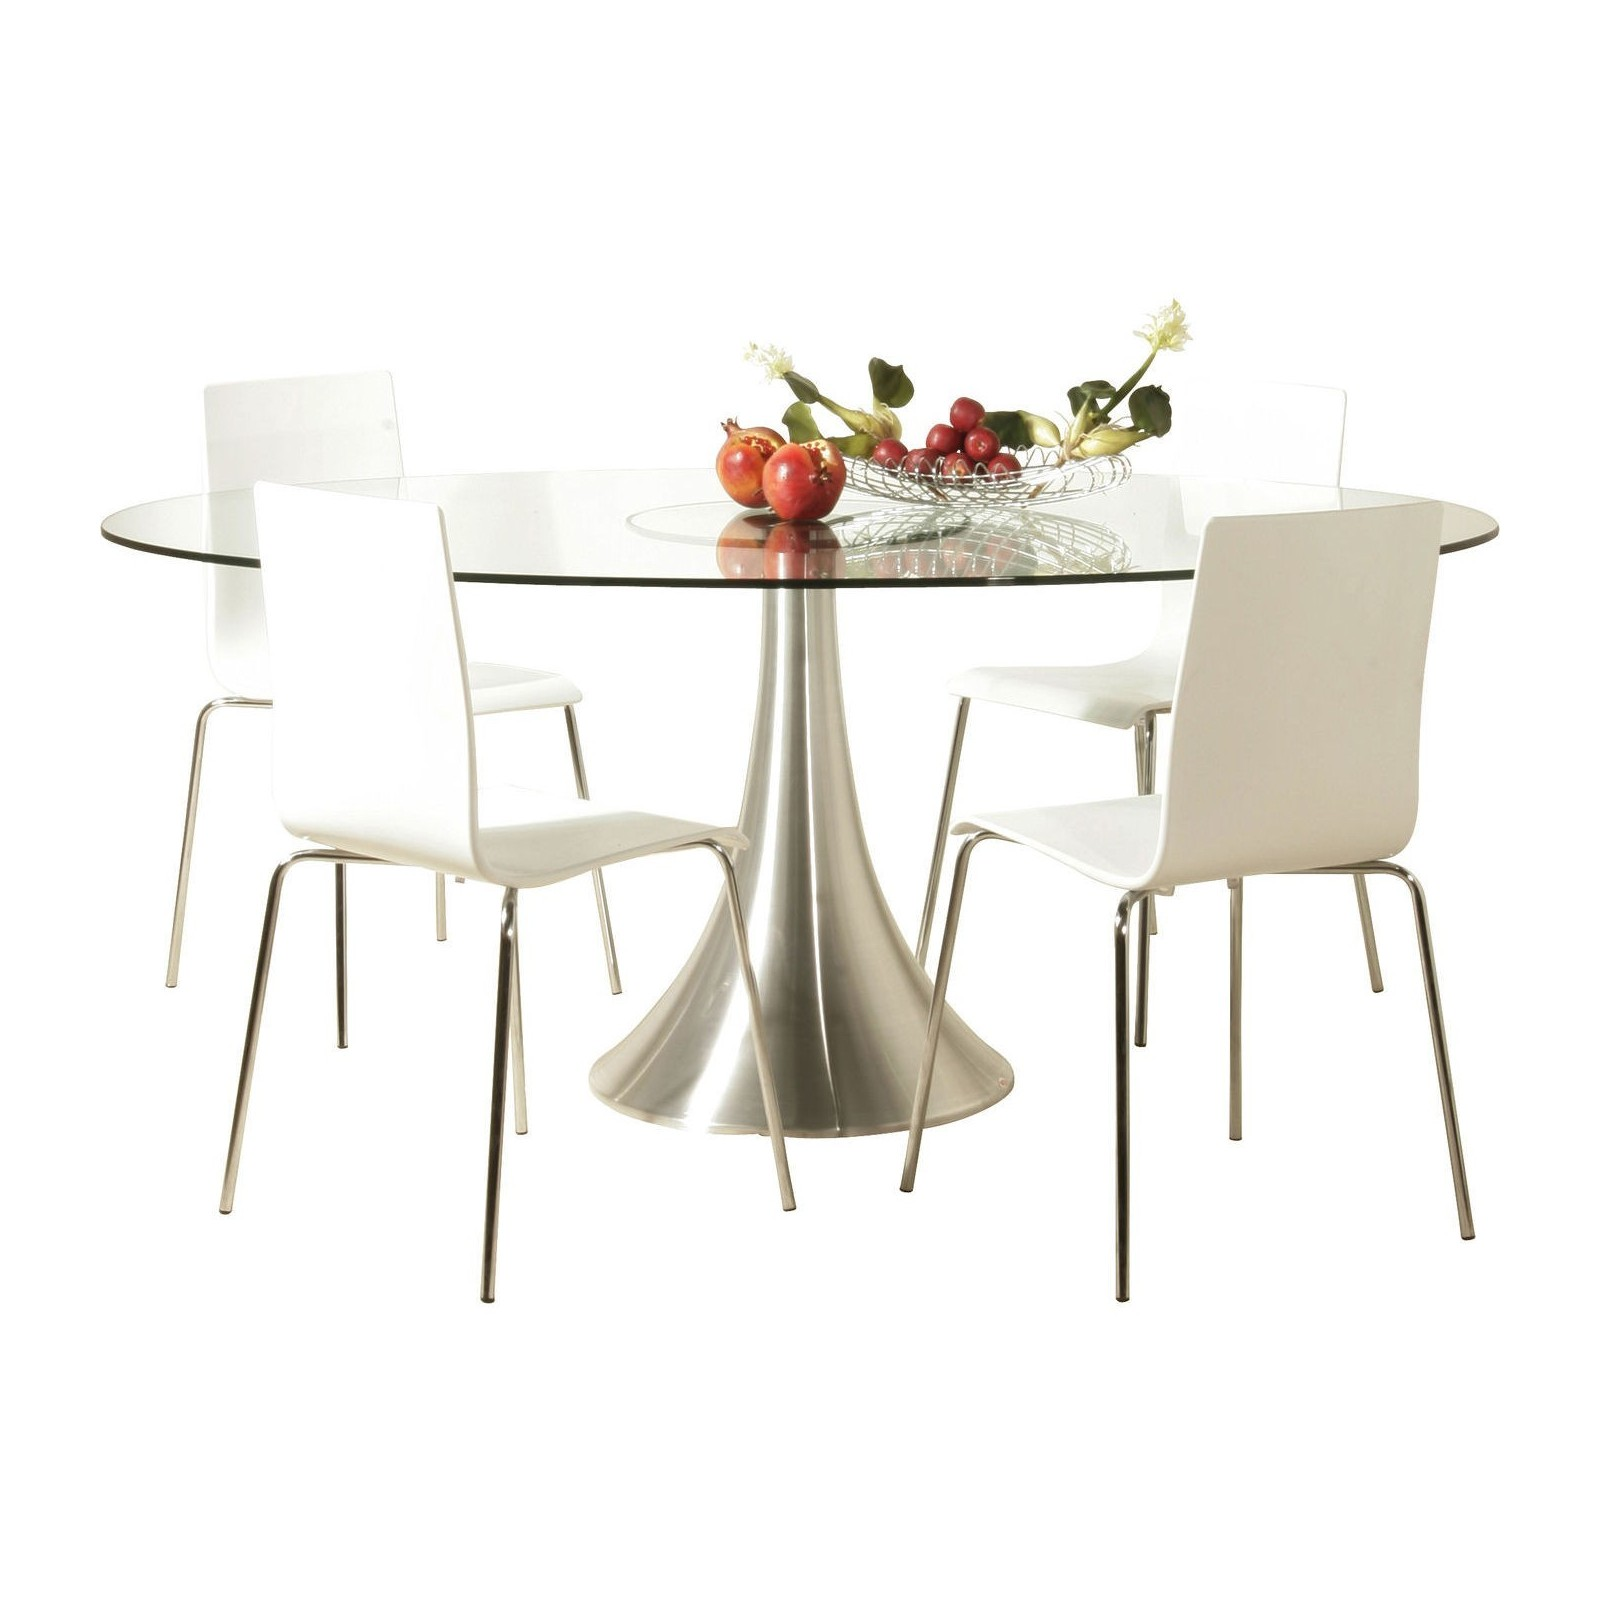 Table Verre Ovale Table Design Verre Possibilita Kare Design